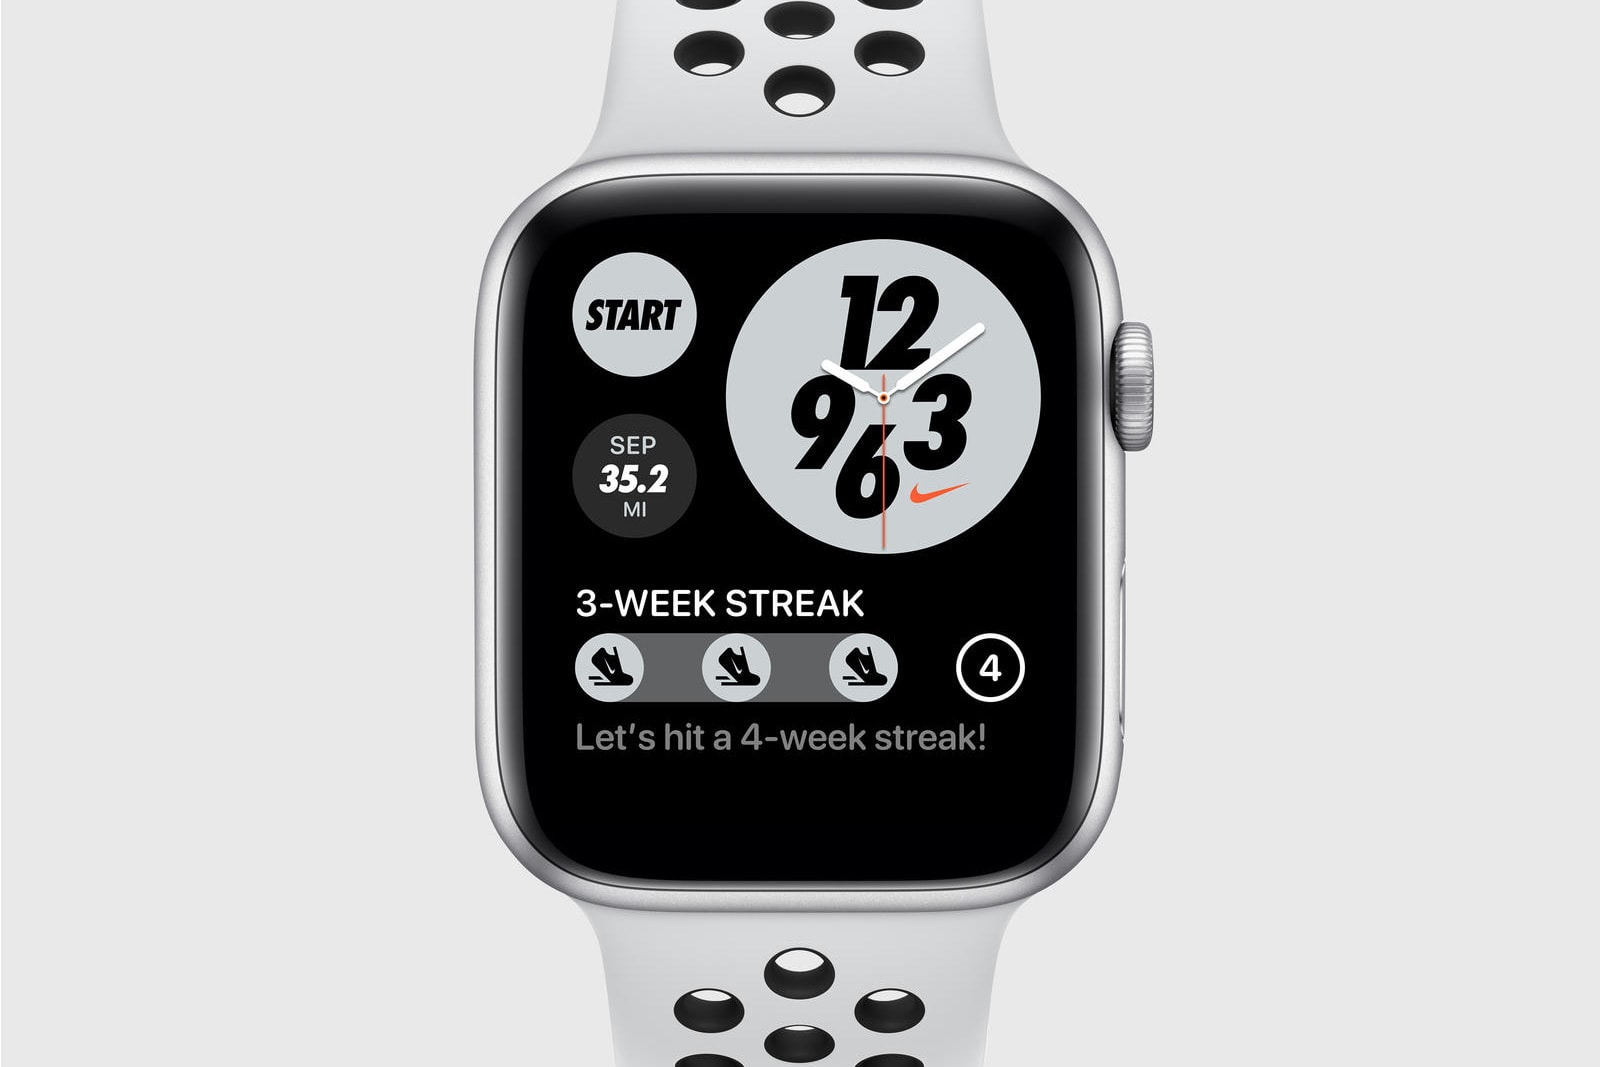 Confesión Inhibir tugurio  Nike Run Club's Apple Watch app gives you more incentives to keep running    Engadget